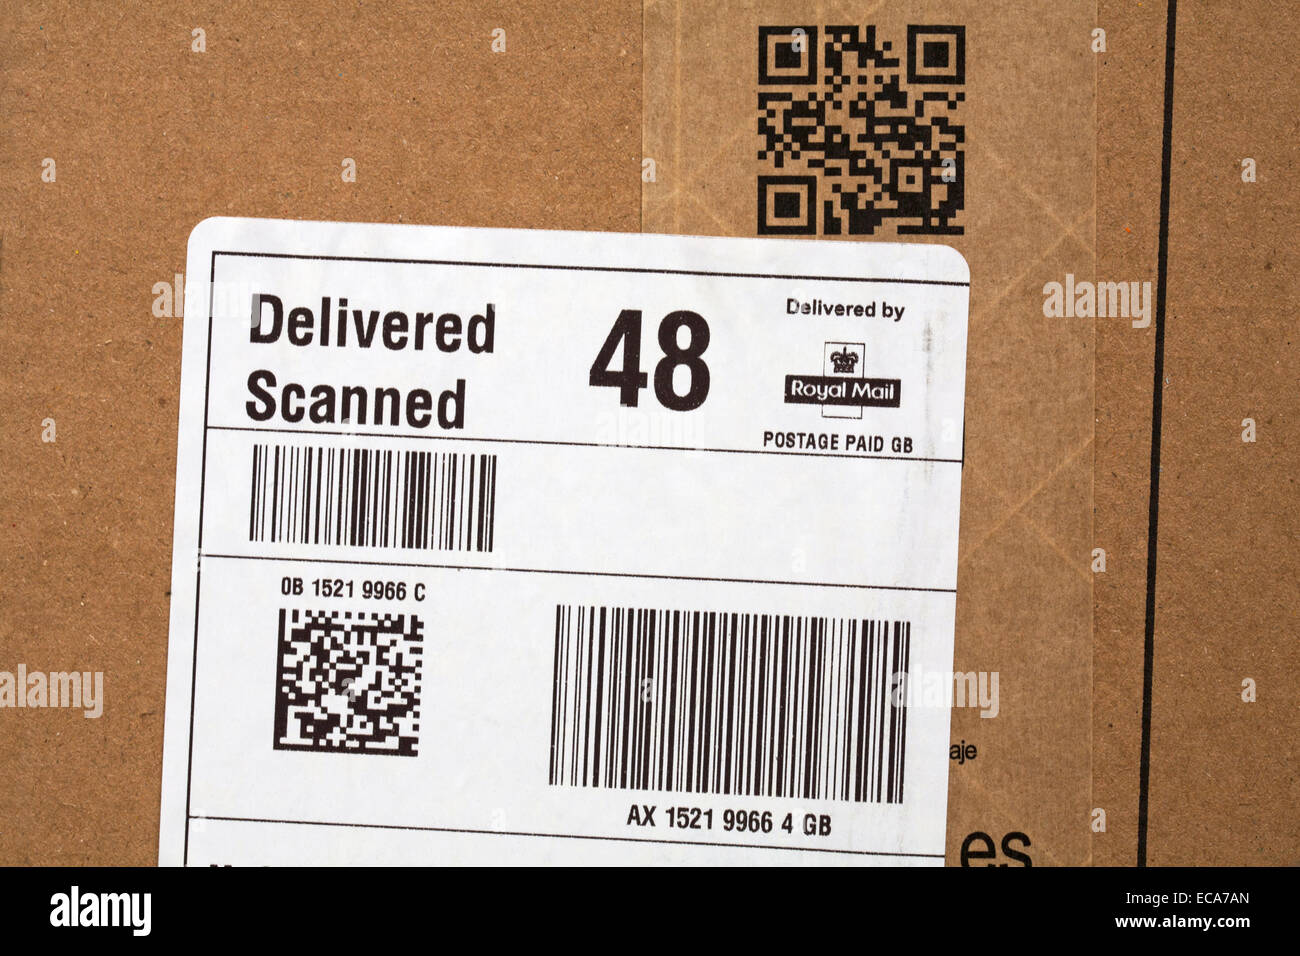 Delivered scanned, delivered by Royal Mail and scan me on parcel from Amazon - Stock Image